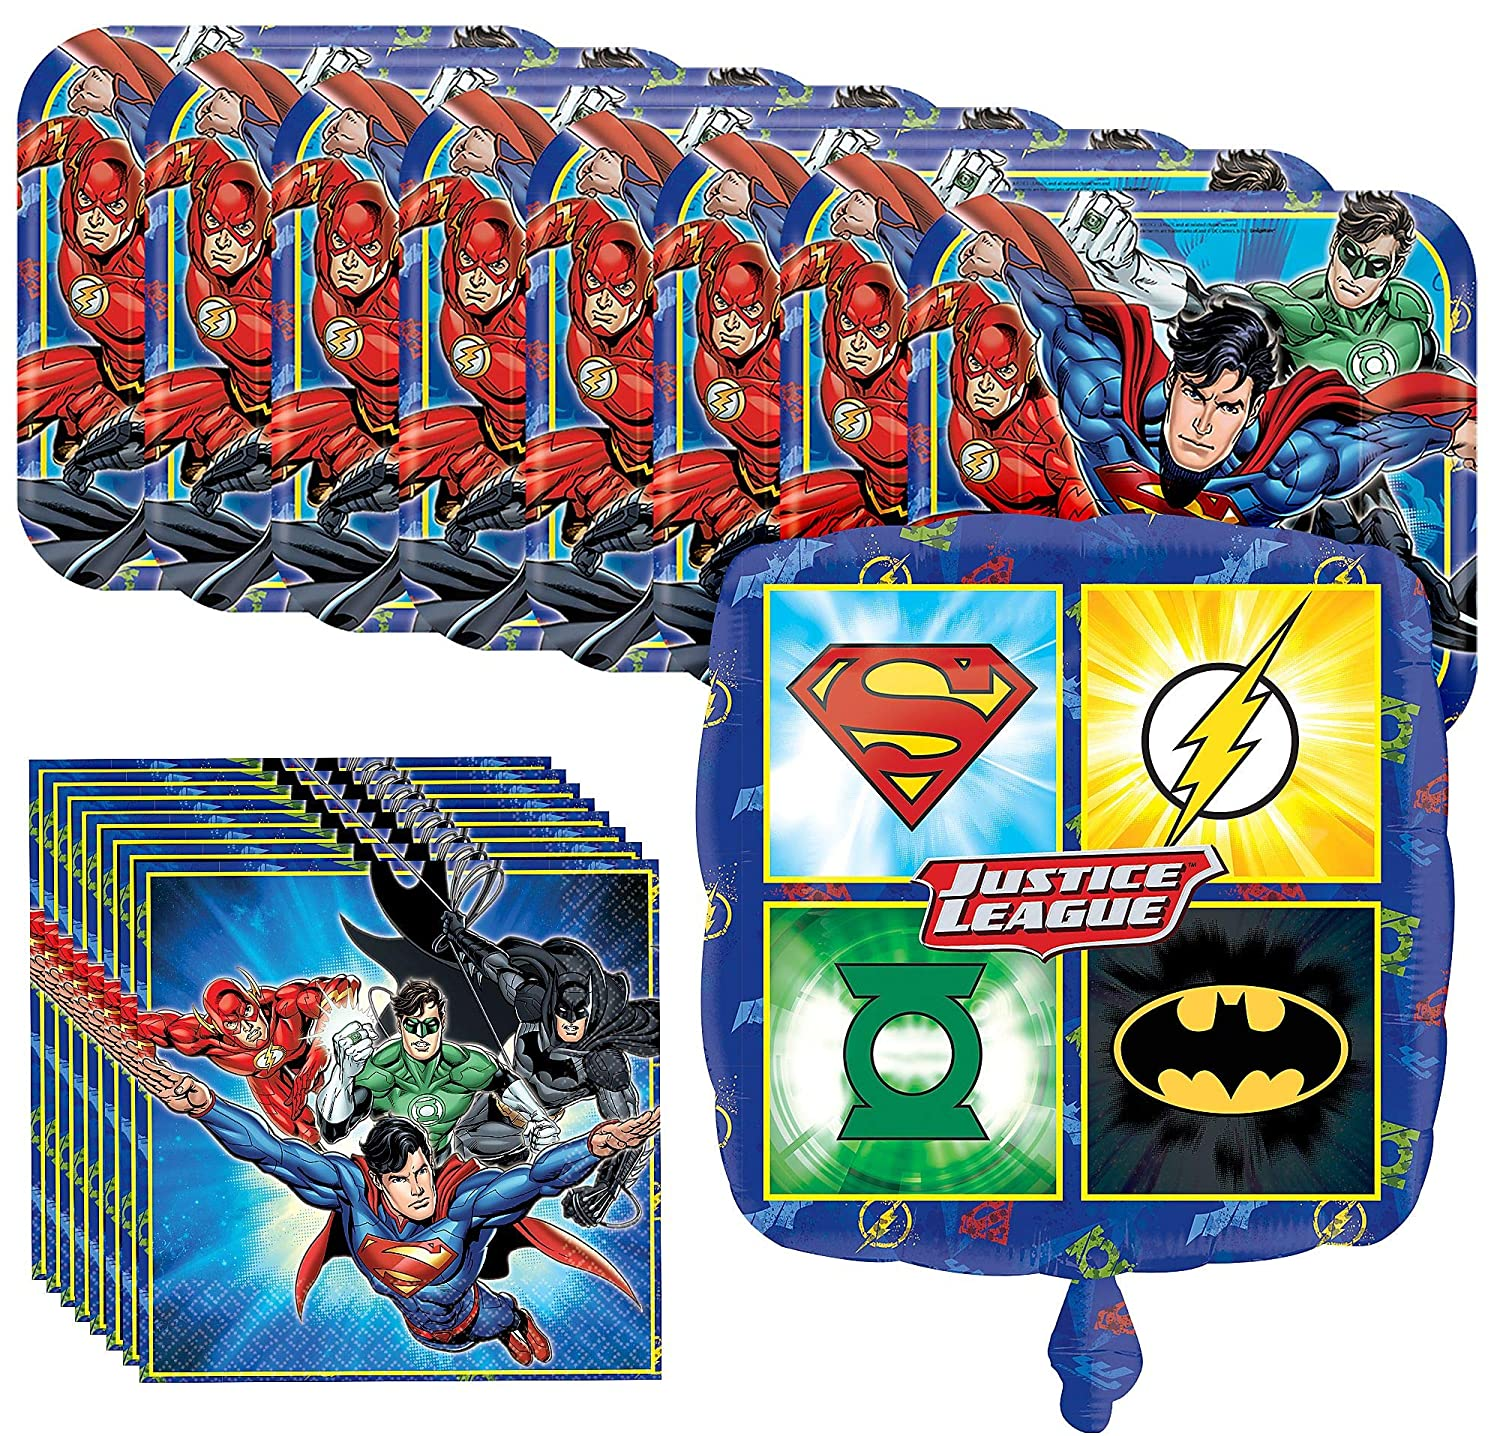 Amazon.com: Party City Justice League Basic - Juego de ...